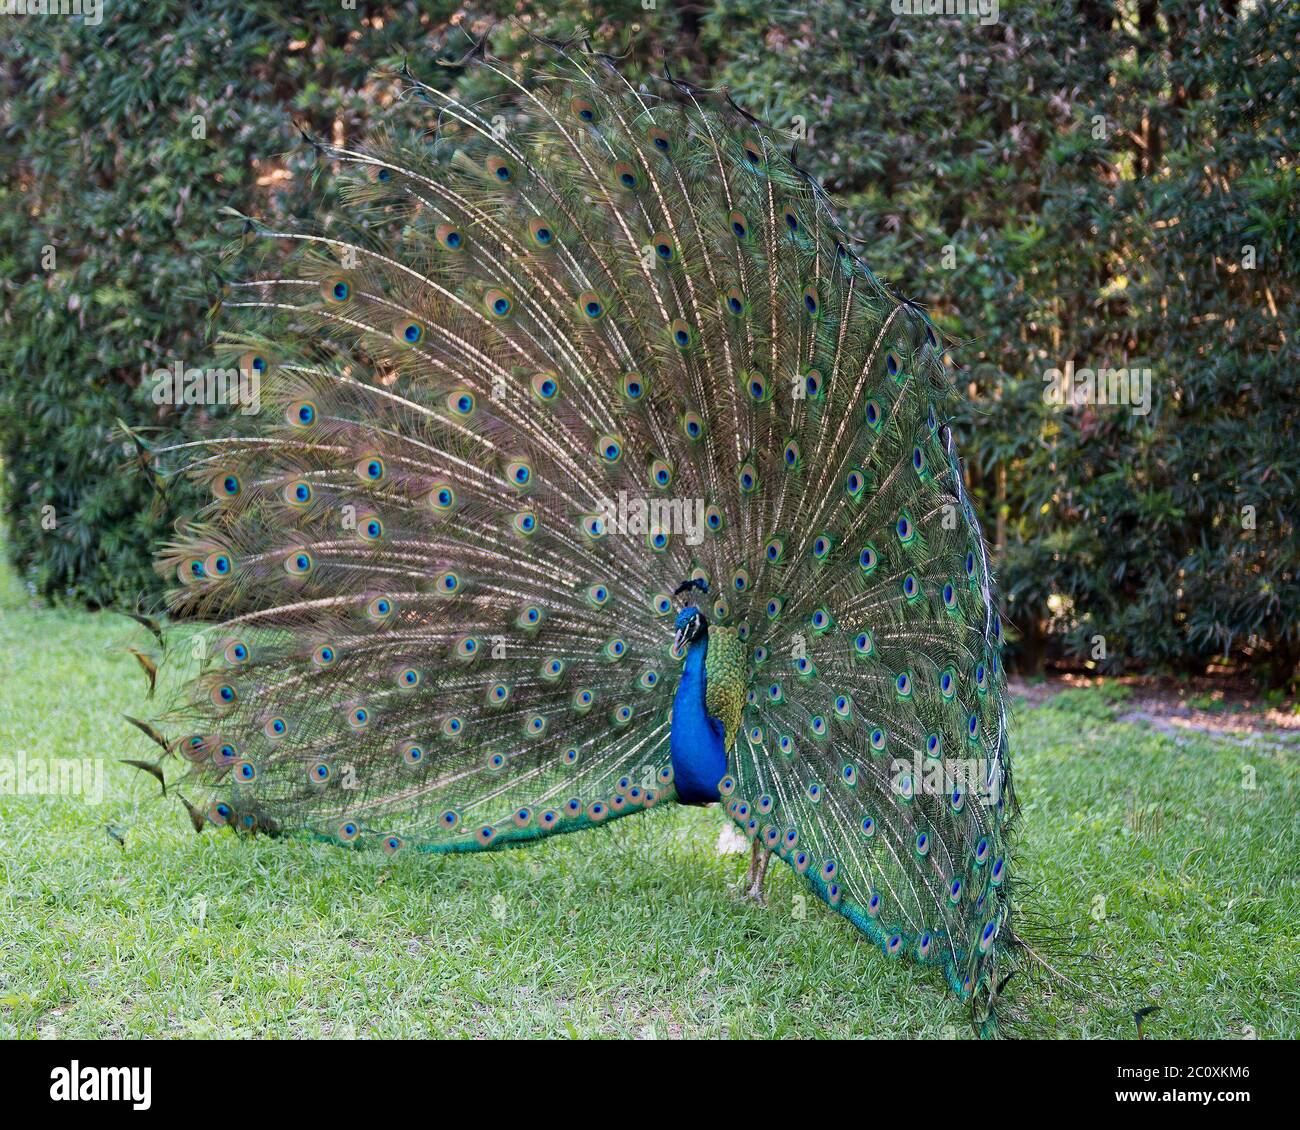 Peacock bird close-up profile, the beautiful colorful bird. Peacock bird displaying fold open elaborate fan with train shimmering feathers with blue-g Stock Photo